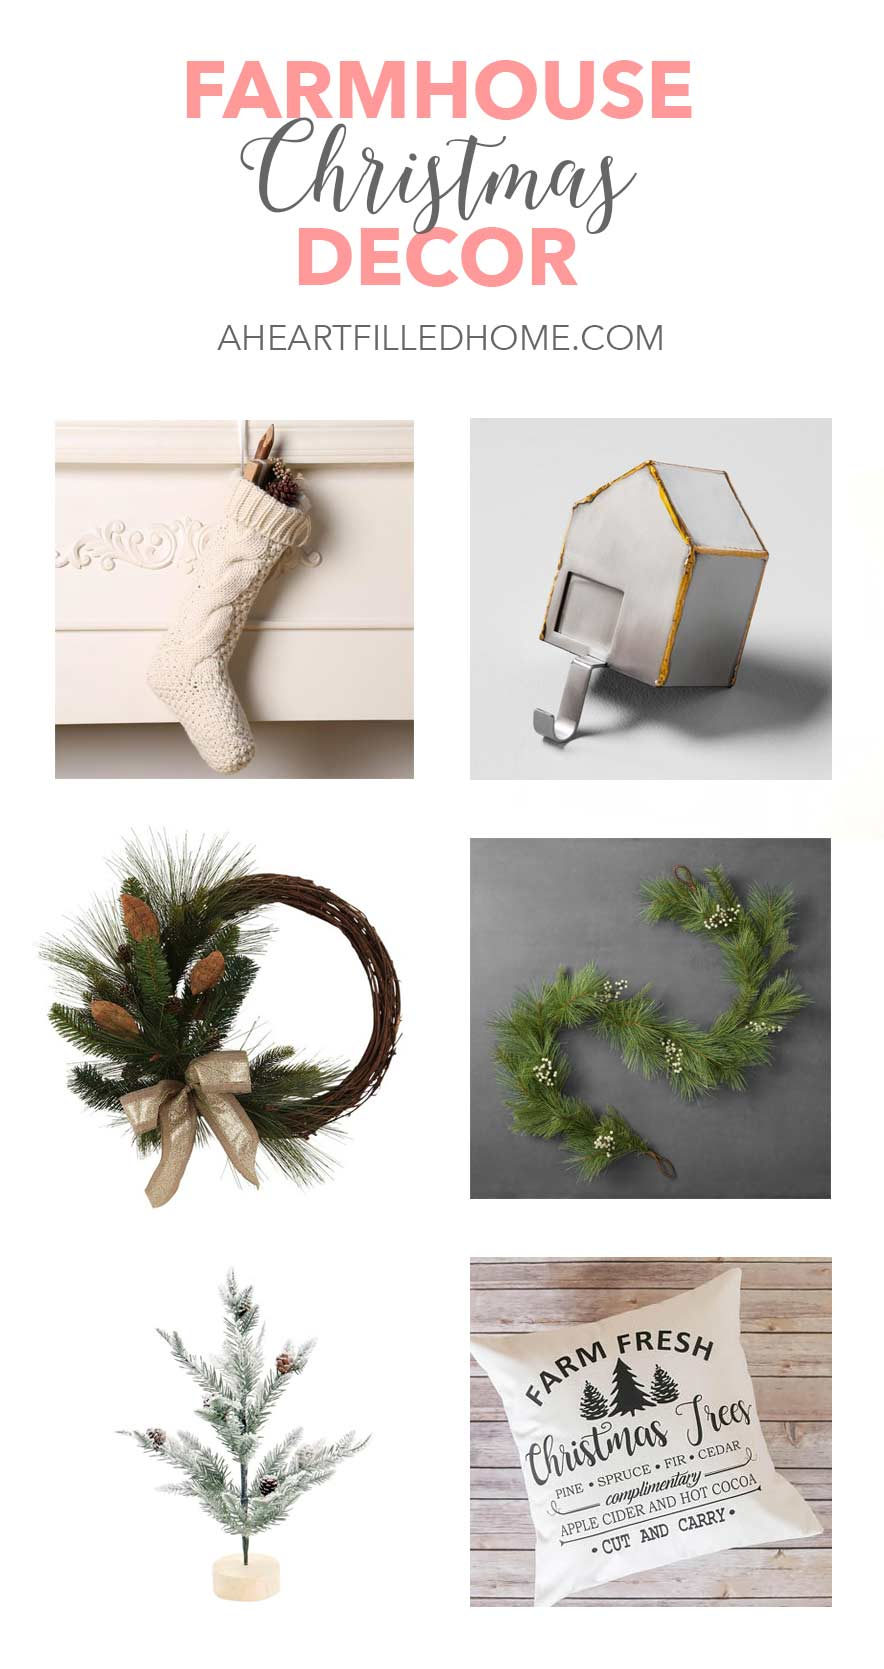 Budget Friendly Farmhouse Style Christmas Home Decor Finds - So many beautiful and affordable options! from aheartfilledhome.com